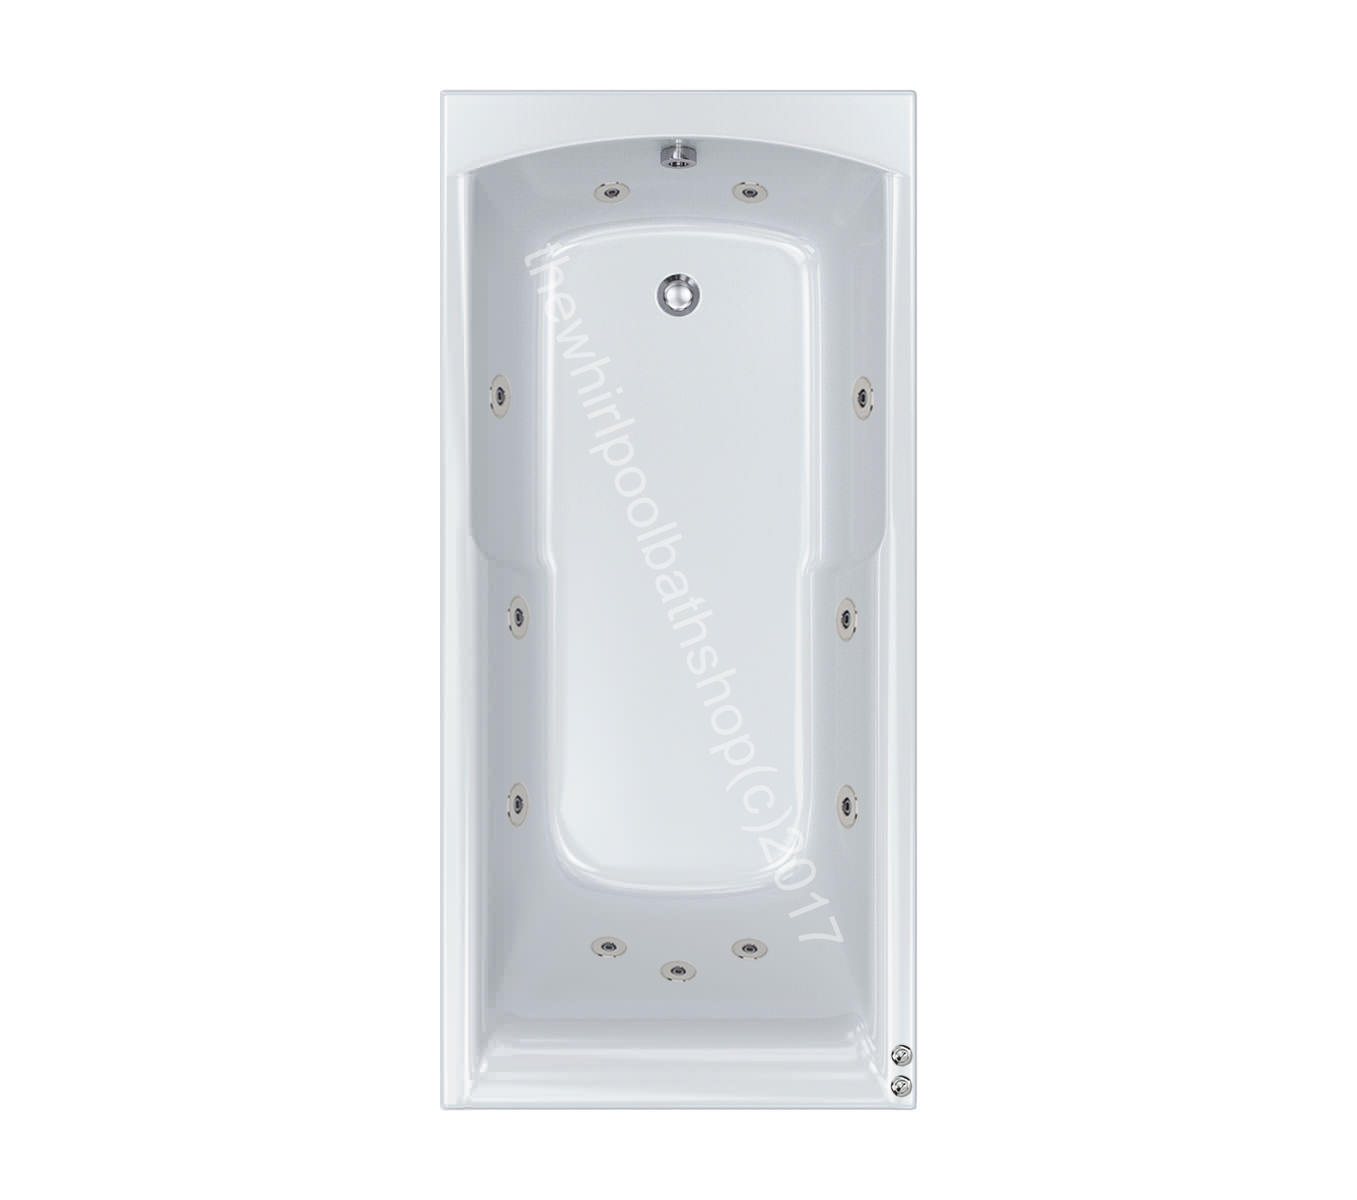 11 jet Carron Apex 1700 x 800 Whirlpool Bath